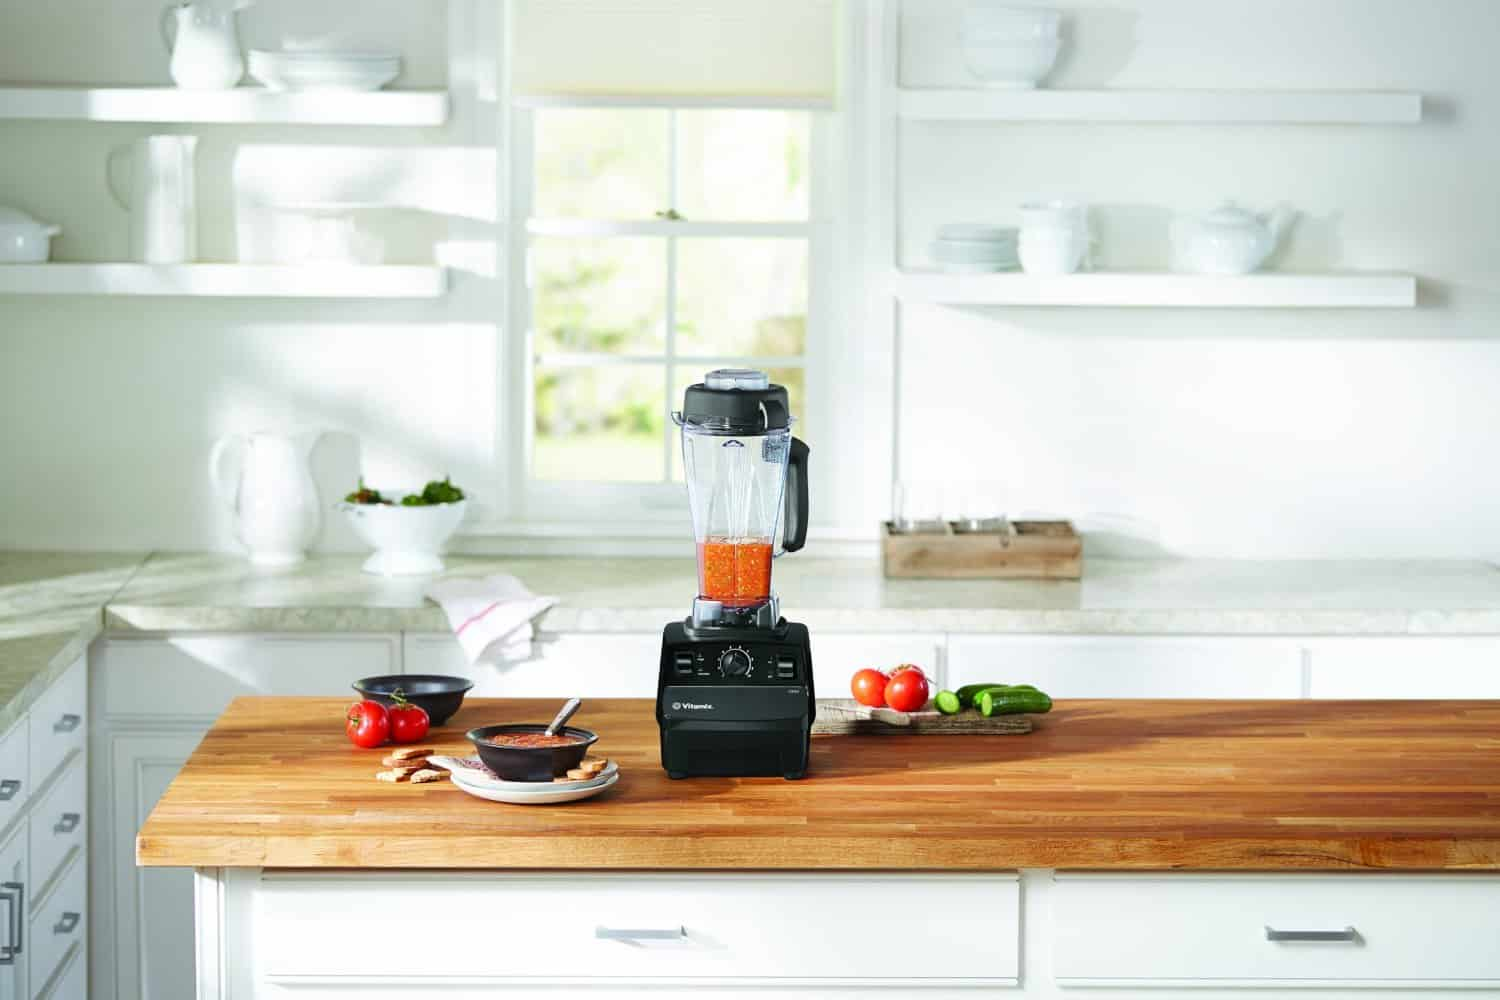 Vitamix 5200 on kitchen countertop